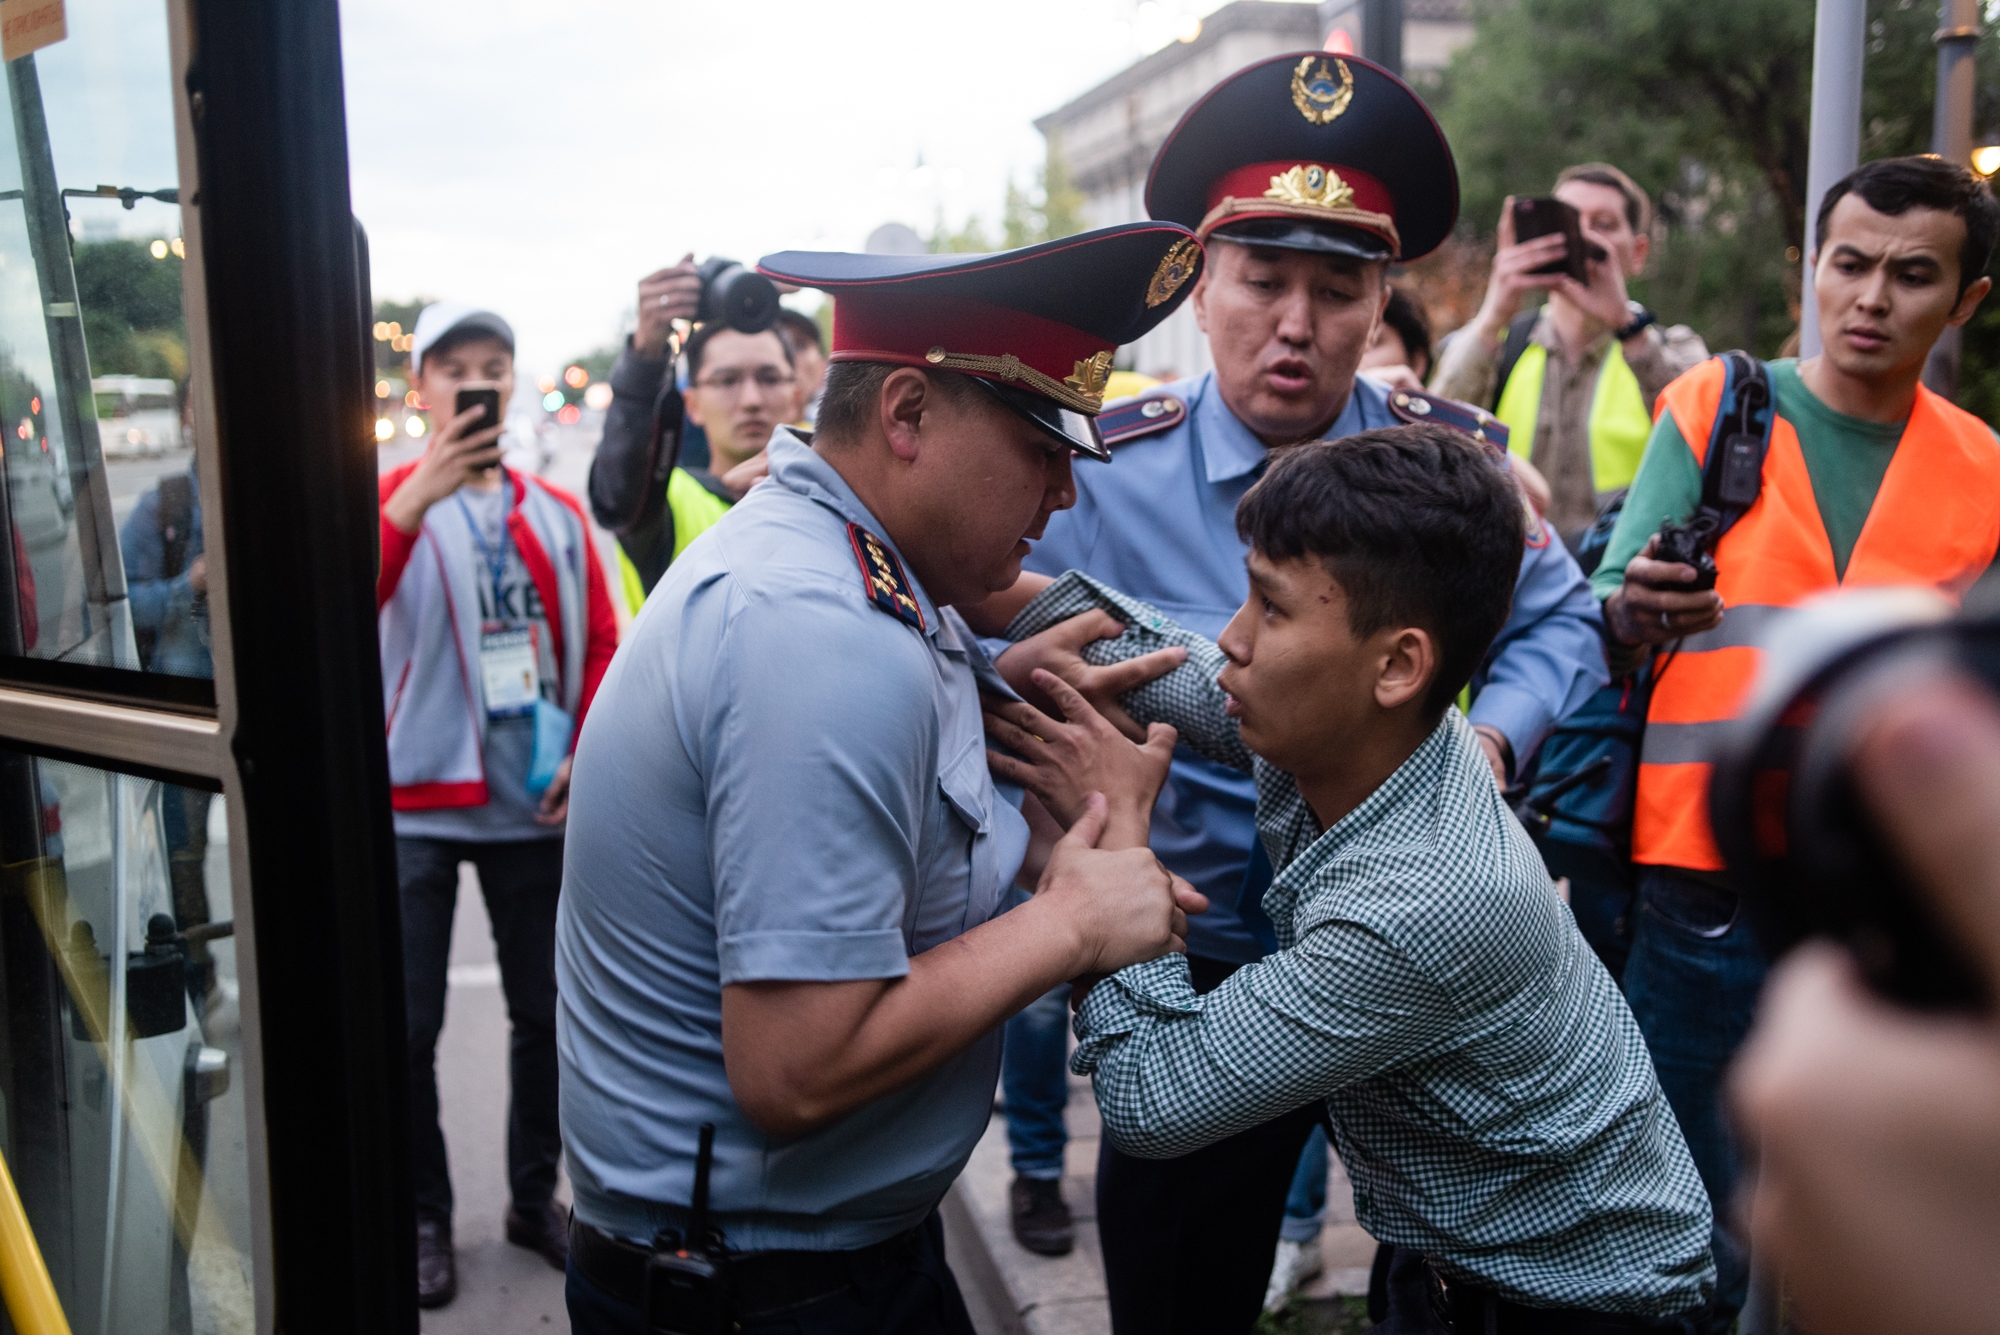 Now you see it: A policeman detaining a young man during an abortive demonstration in Almaty on June 12. (Photo: Danil Usmanov)